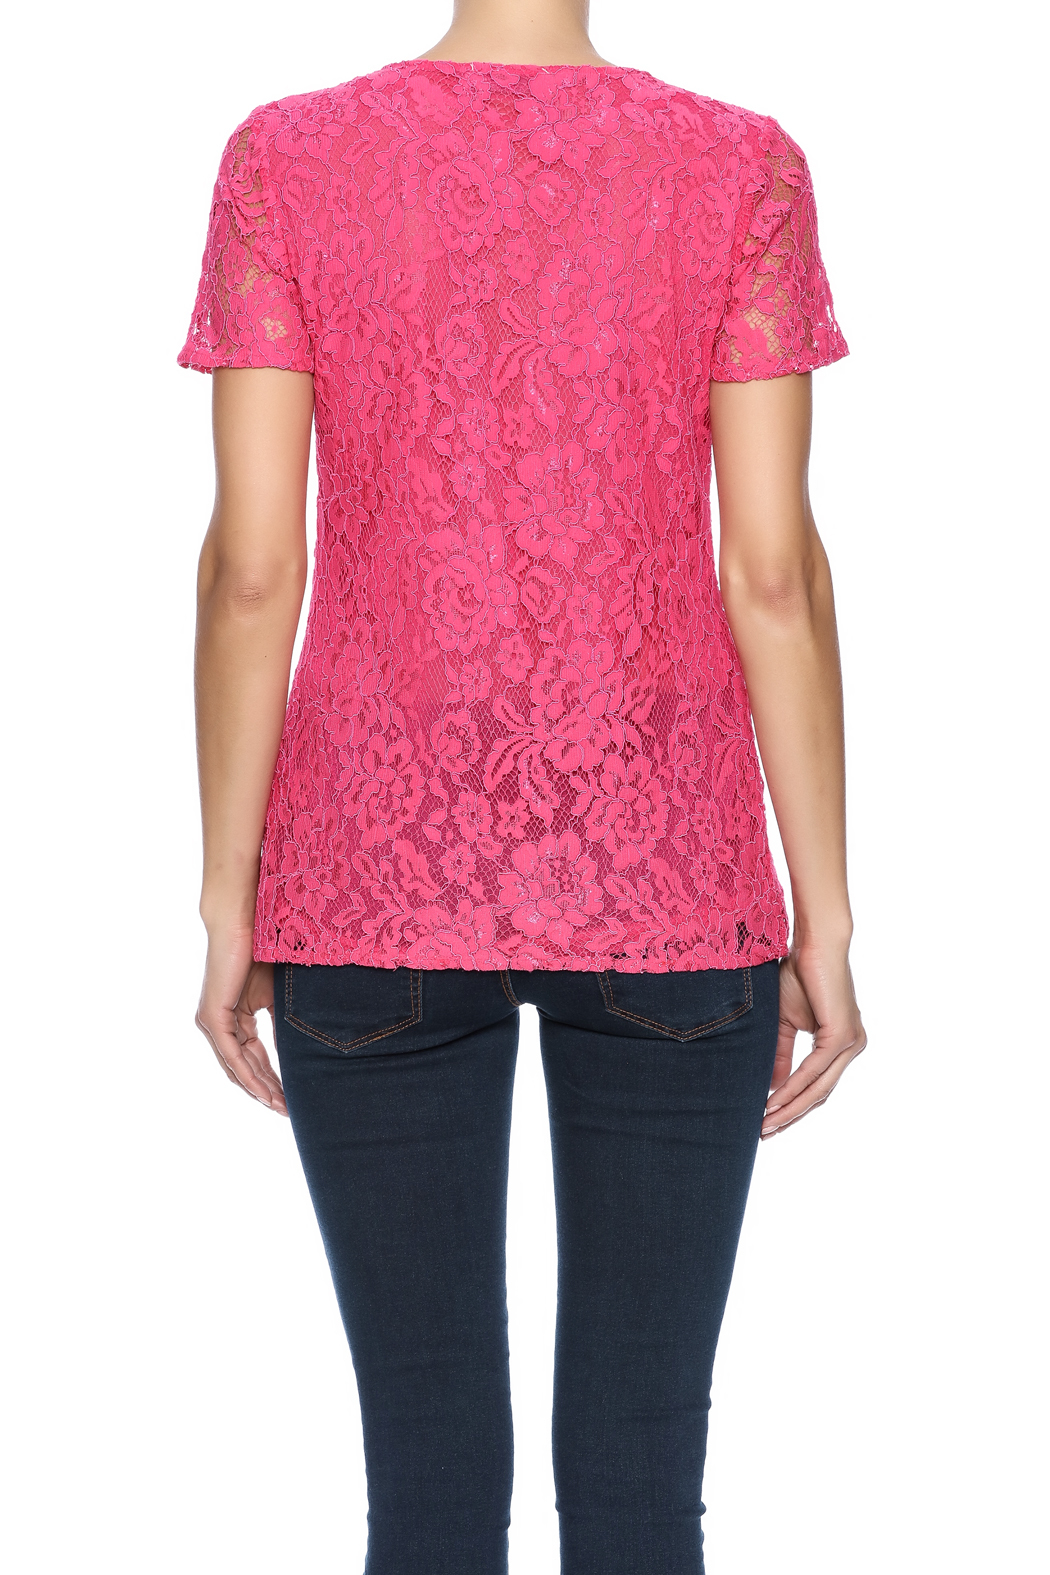 Betas Choice Pink Lace Top - Back Cropped Image